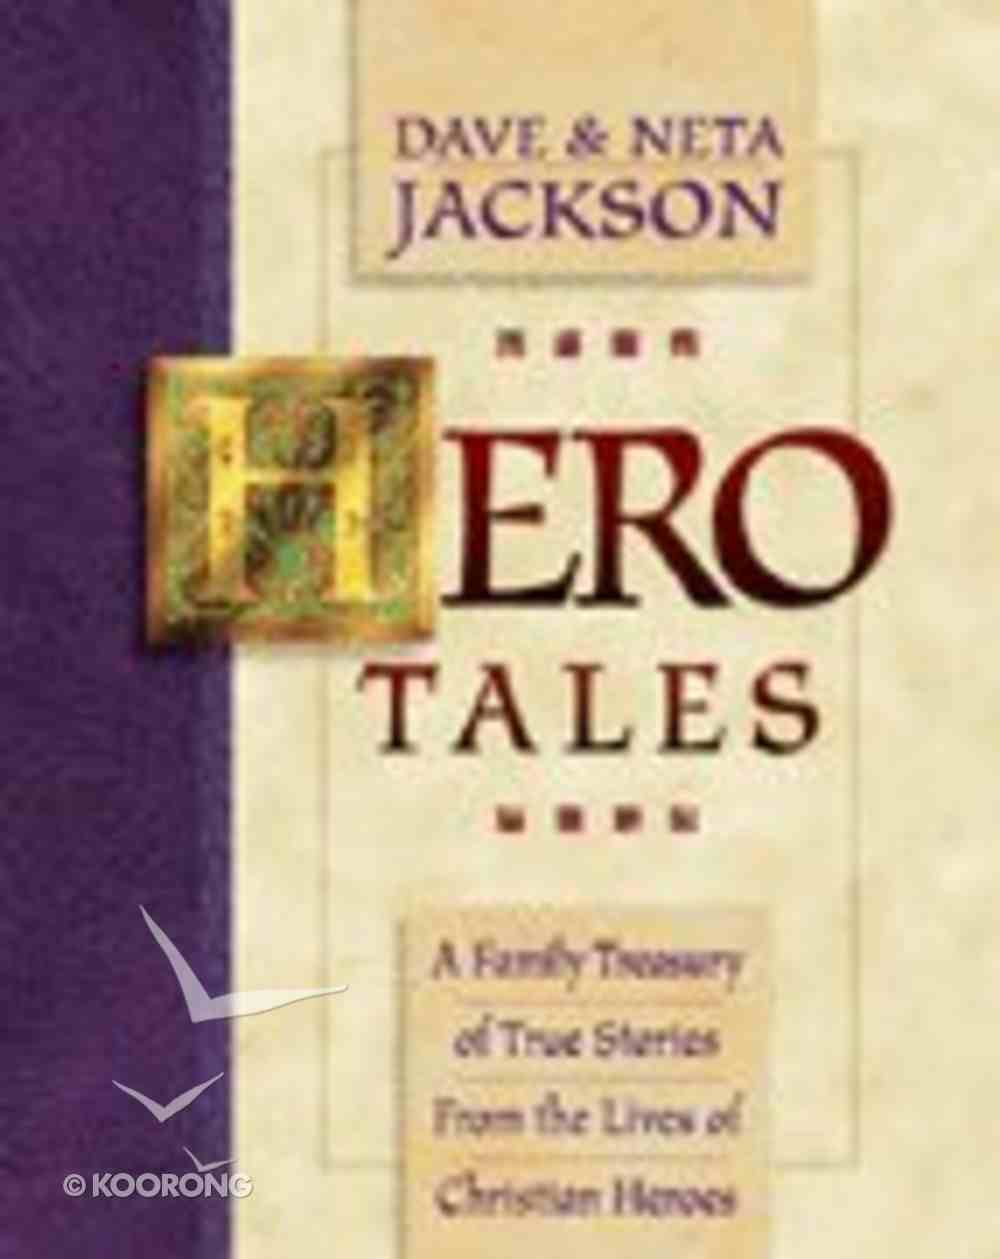 Hero Tales #01: A Family Treasury of True Stories From the Lives of Christian Heroes Paperback